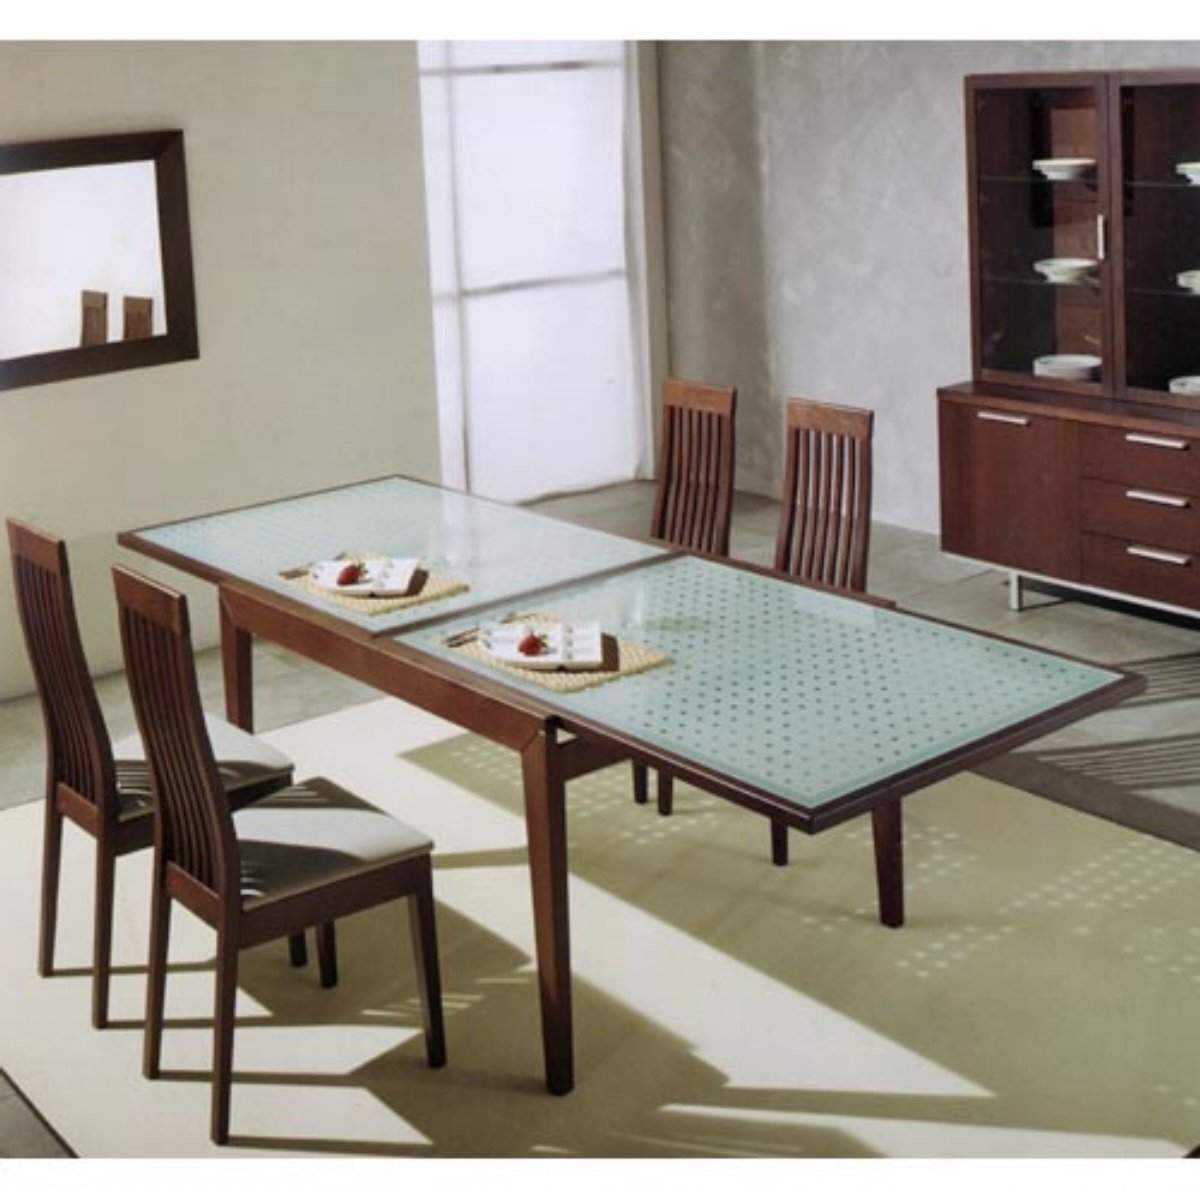 Extending Glass Dining Table Sets • Table Setting Design Regarding Well Liked Extending Glass Dining Tables (Gallery 21 of 25)